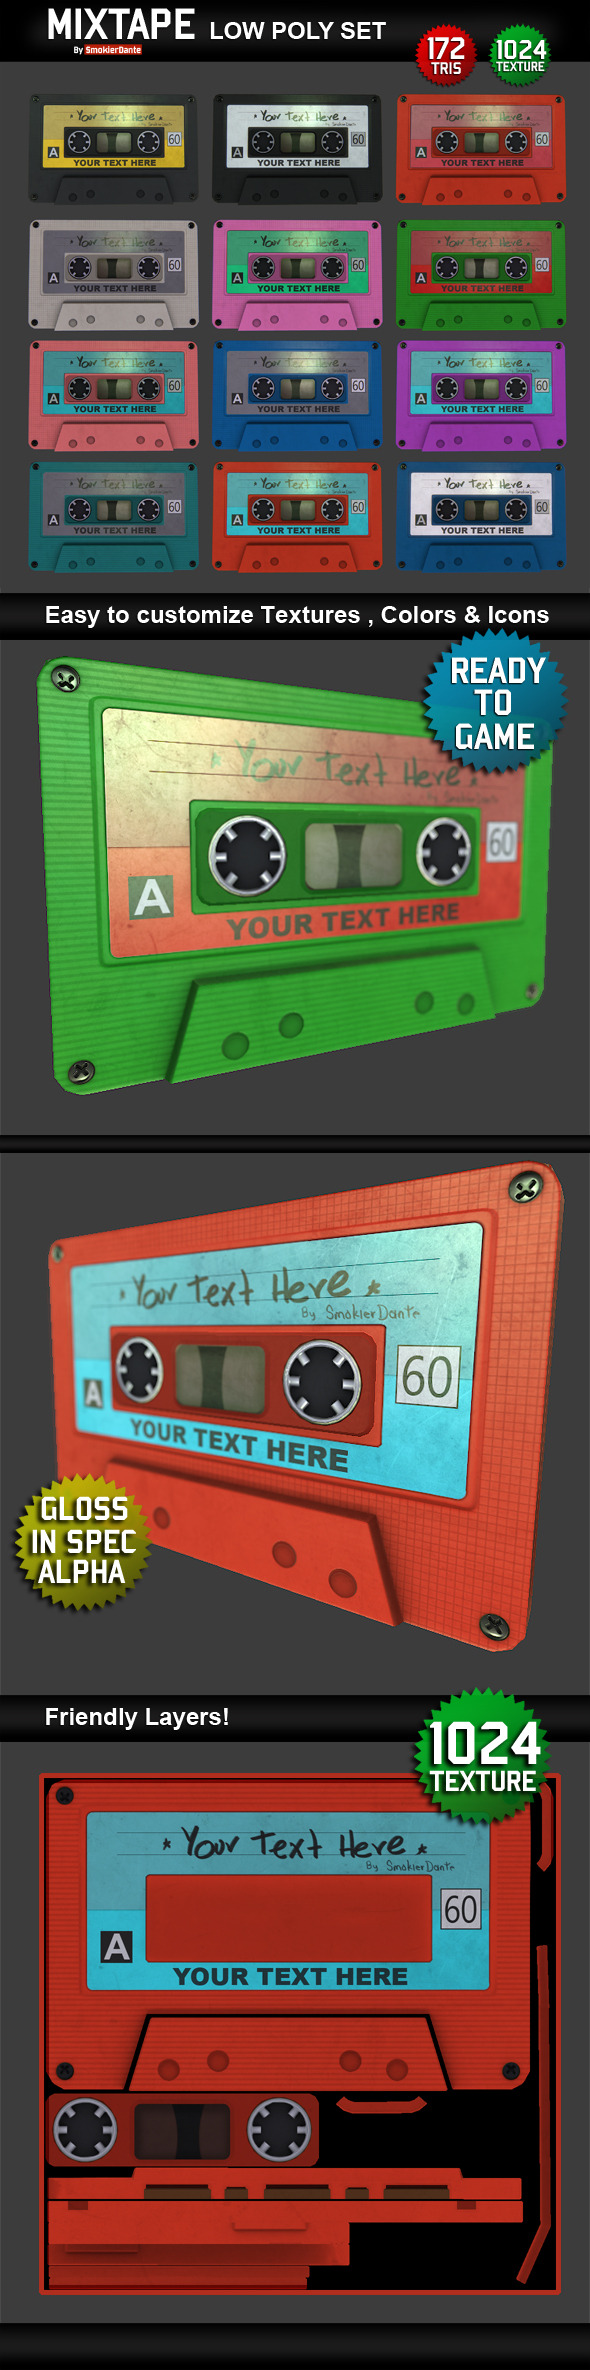 Mixtape Low Poly Model - 3DOcean Item for Sale